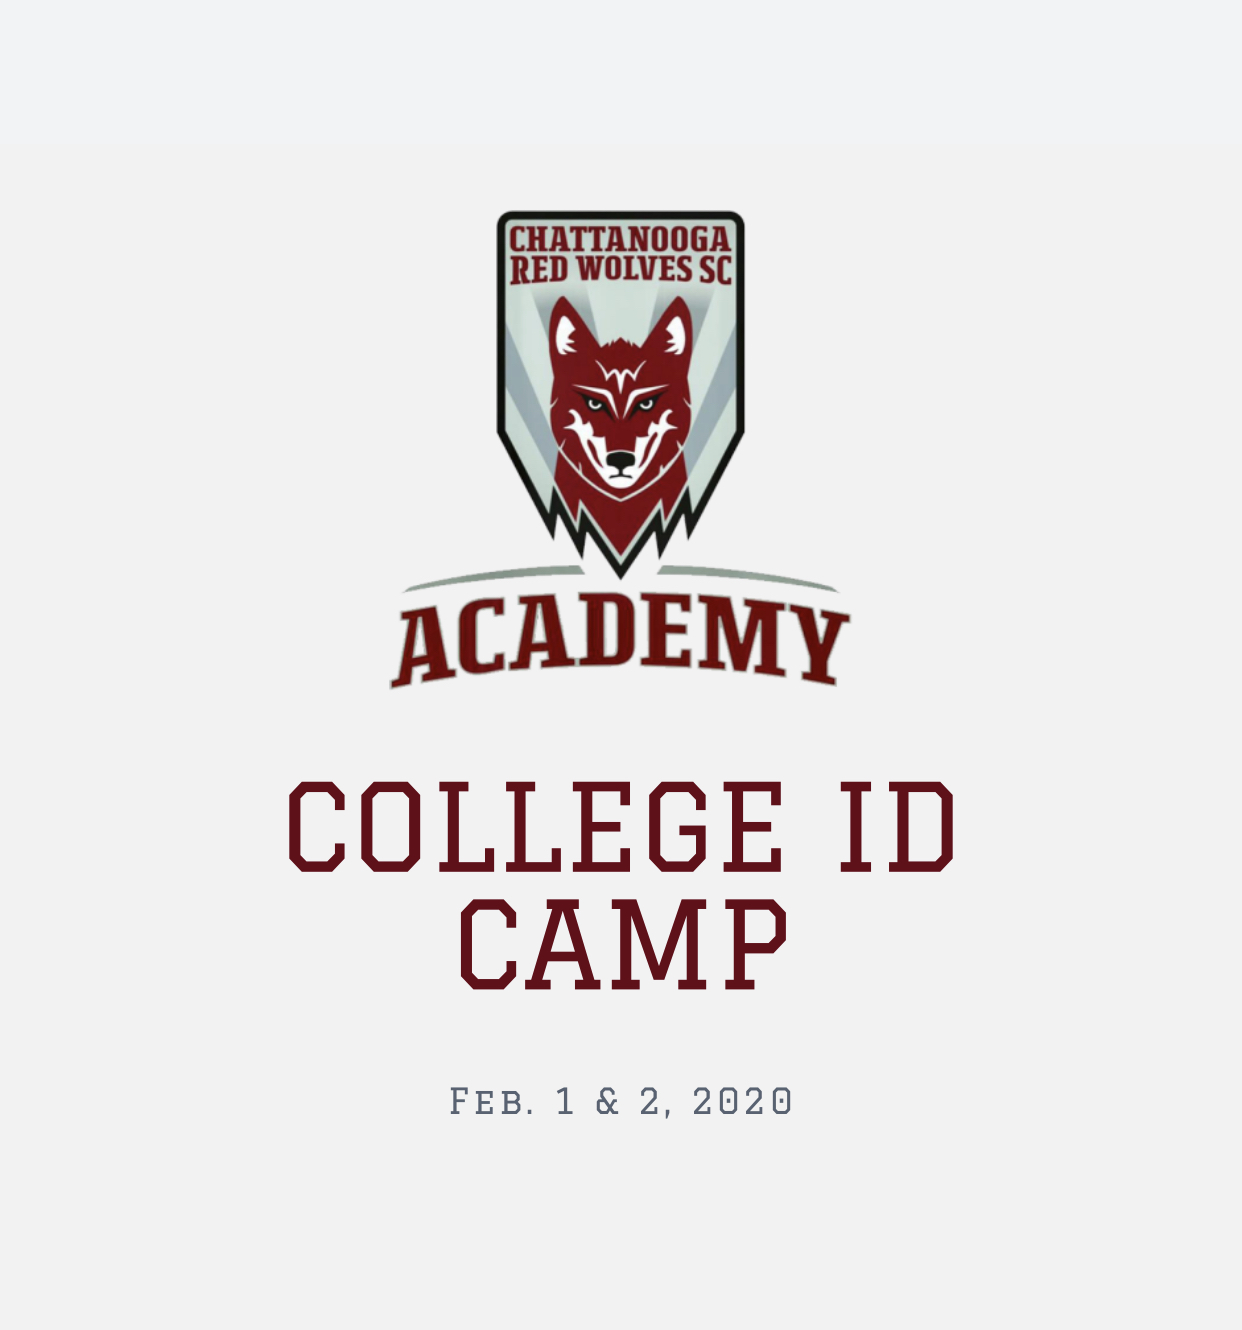 College ID Camp